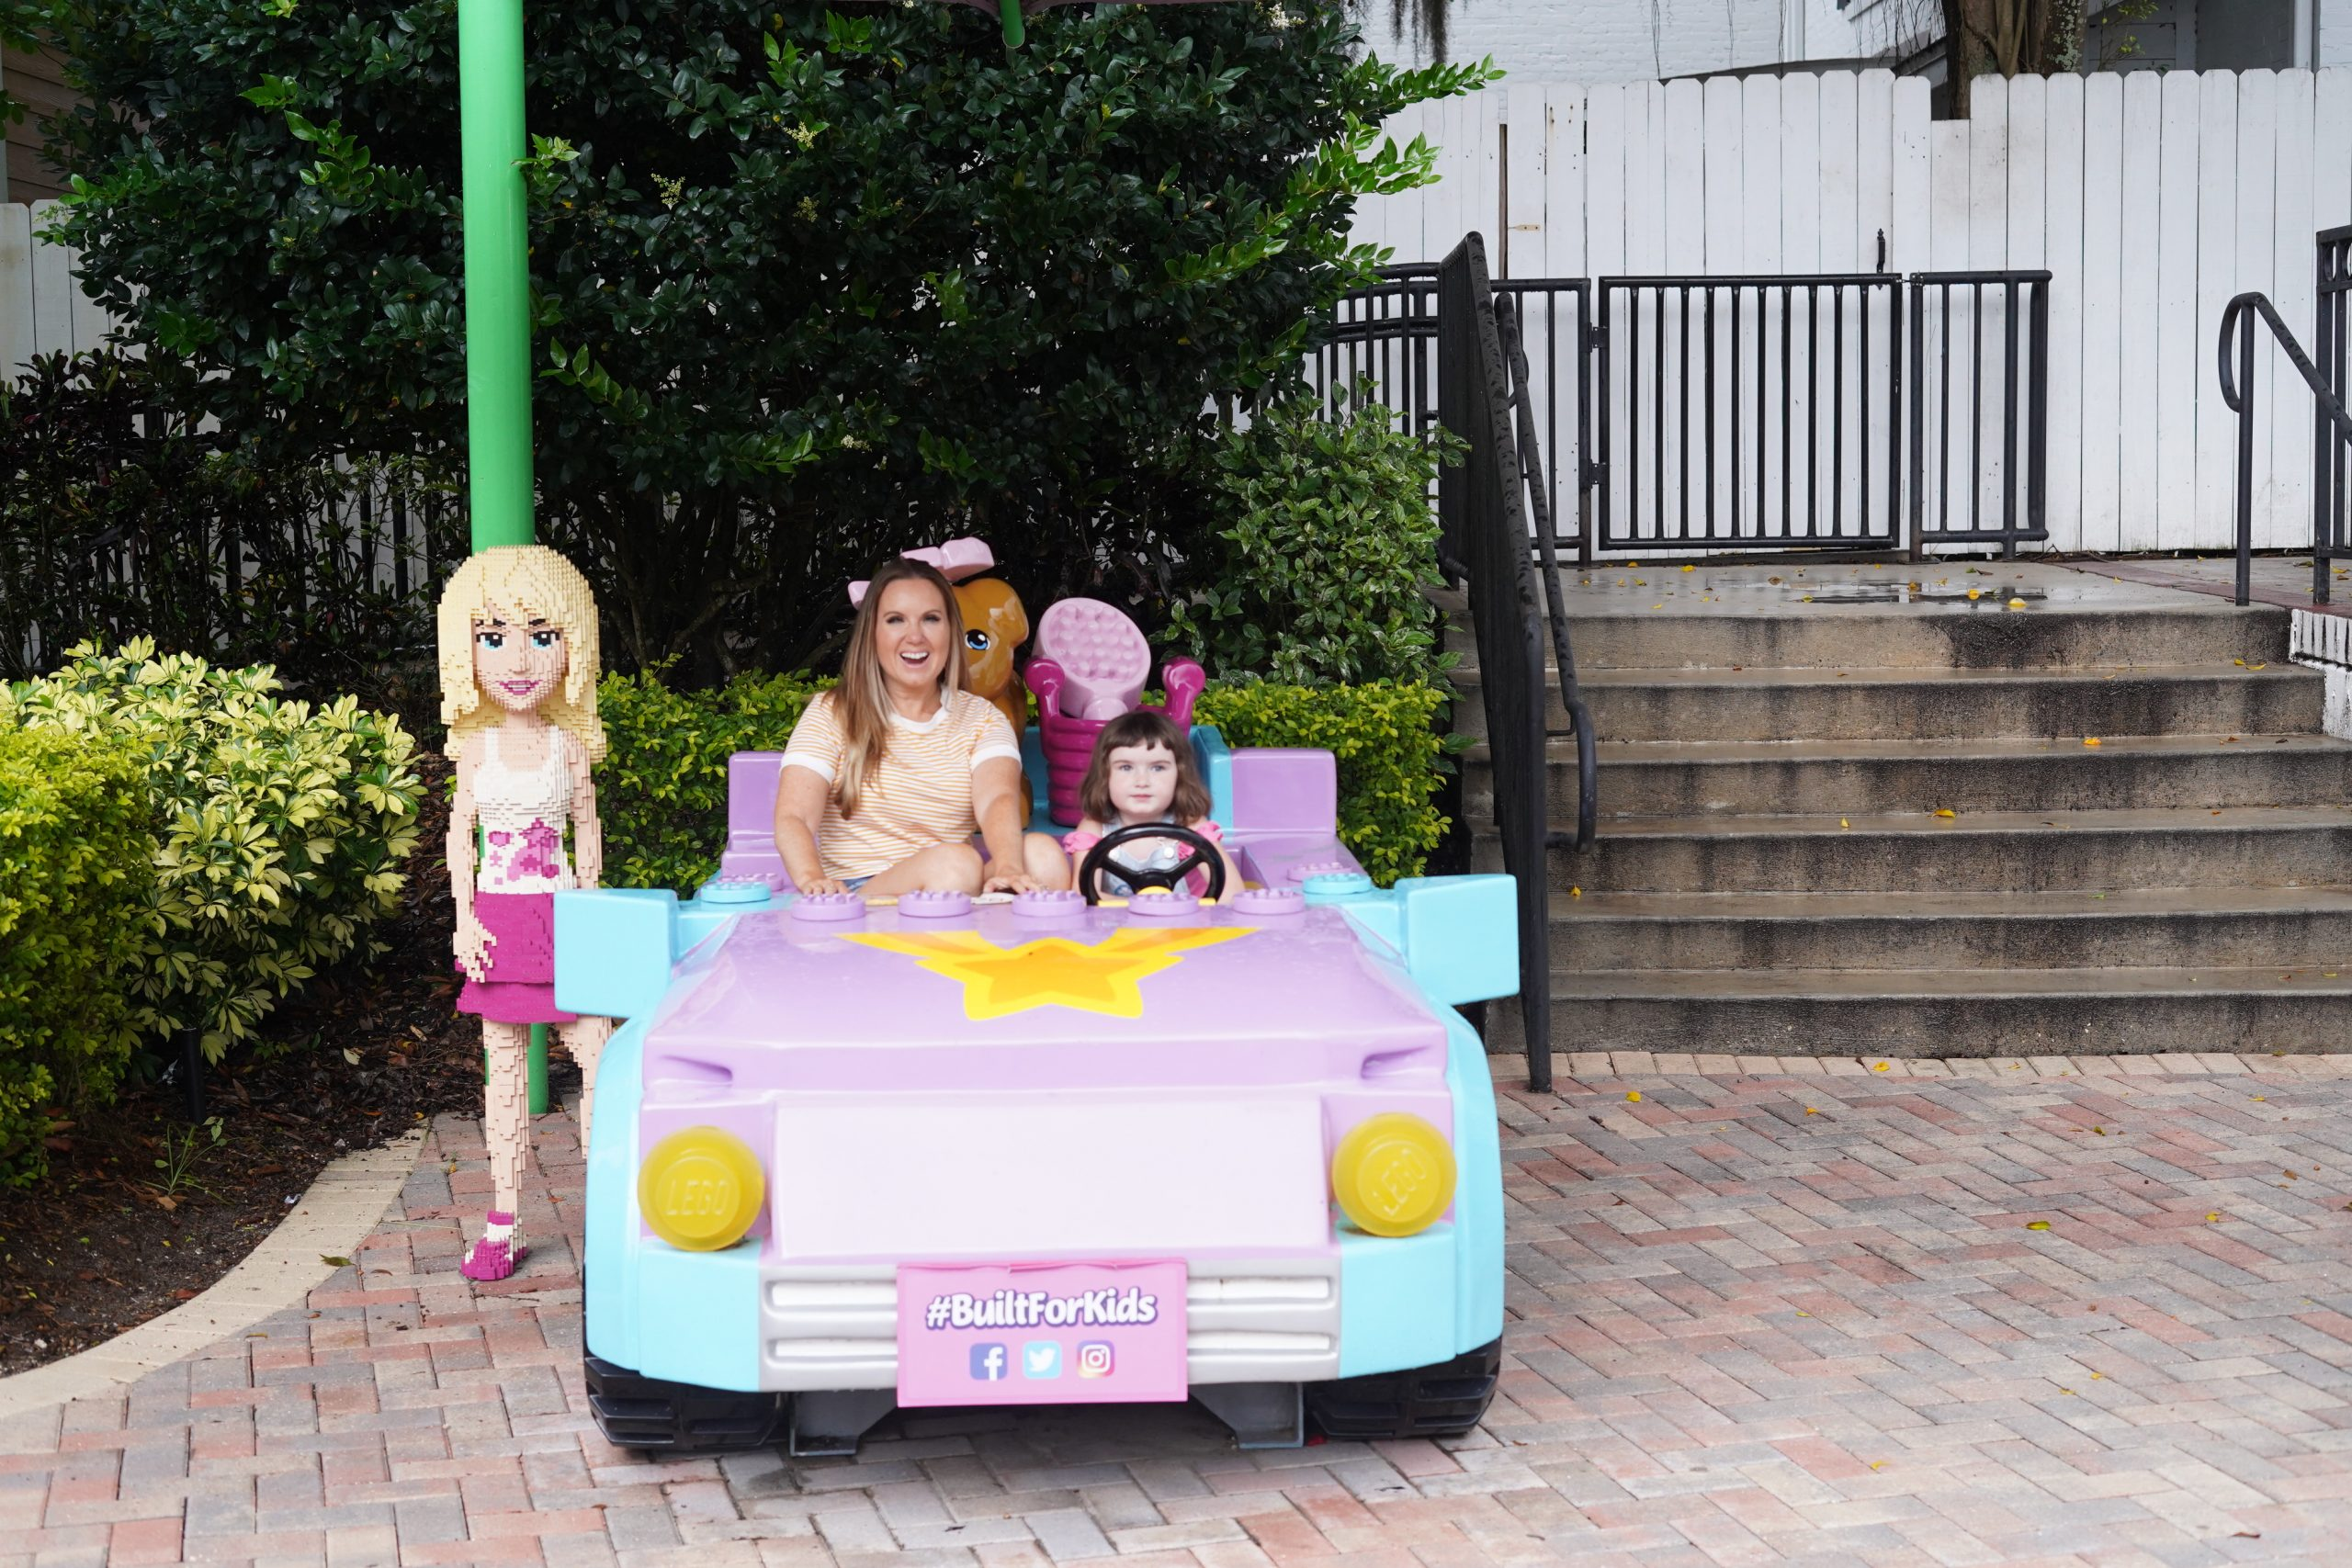 Mom and little girl in a play car at LEGOLAND. | Guide to LEGOLAND Florida